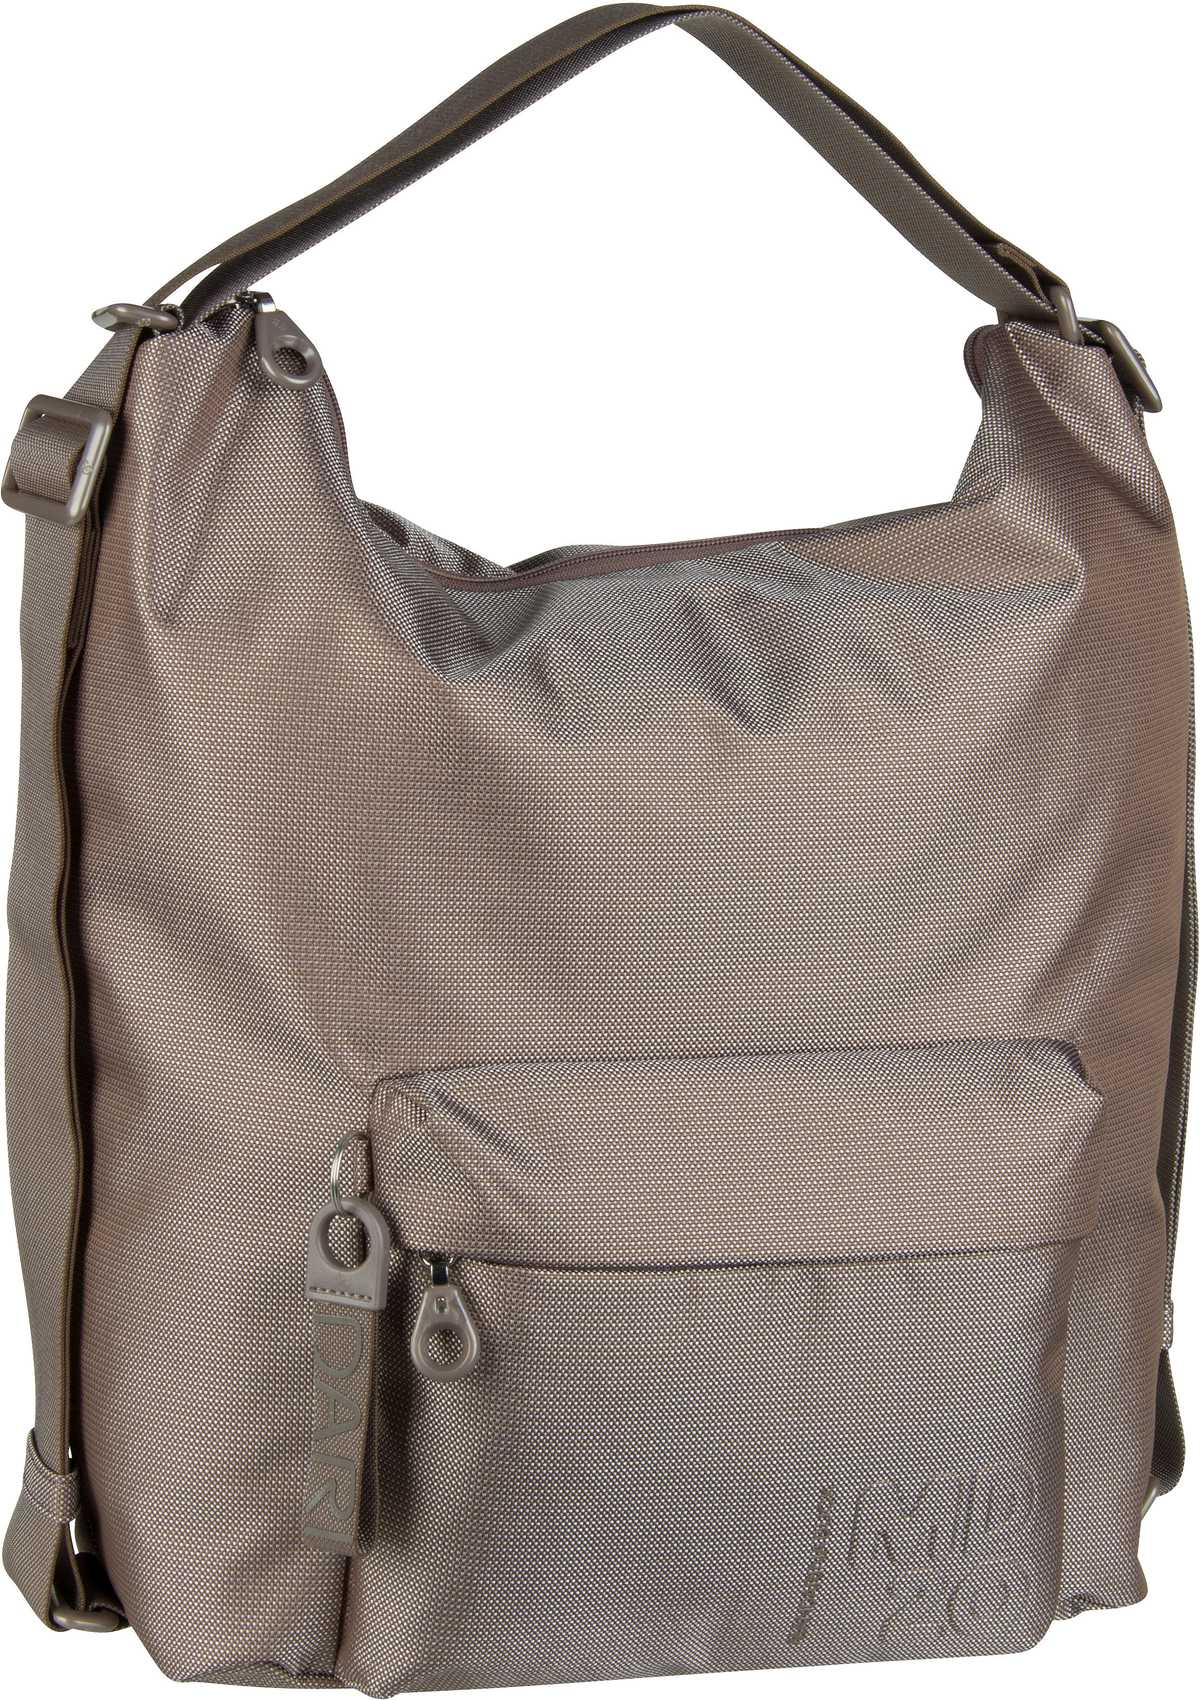 Handtasche MD20 Hobo Backpack QMT09 Taupe